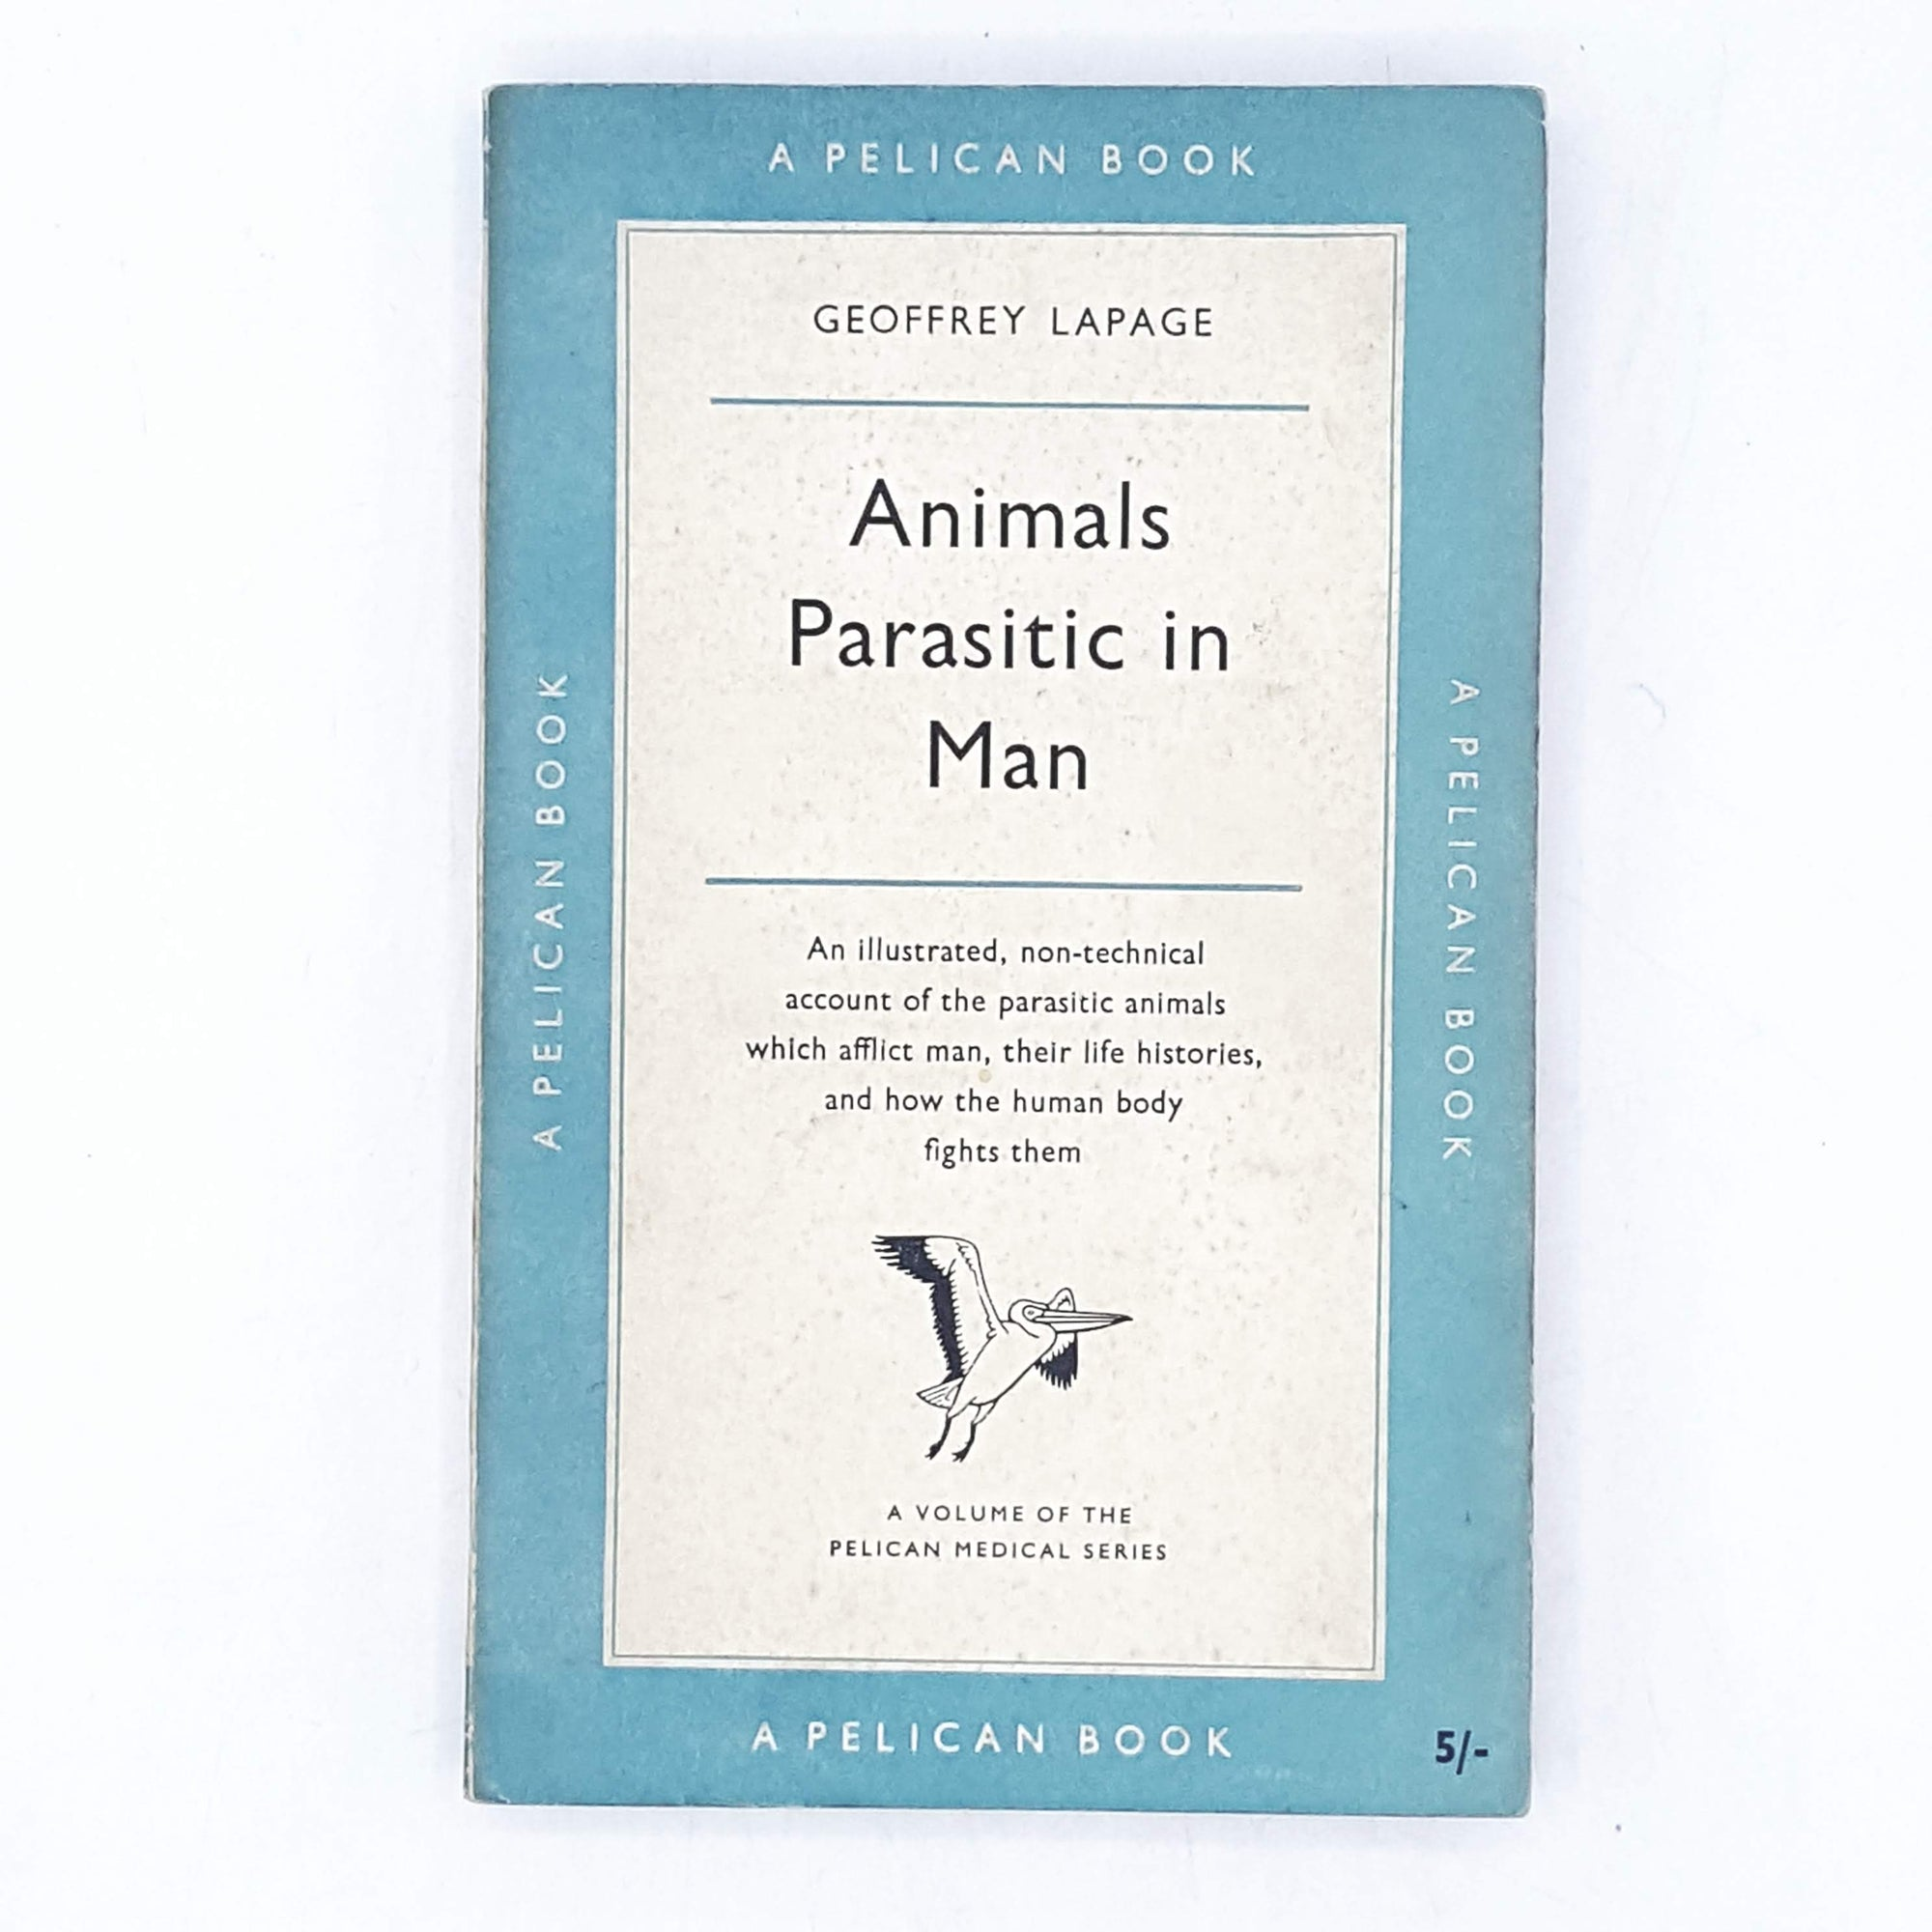 Animals Parasitic in Man by Geoffrey Lapage 1957